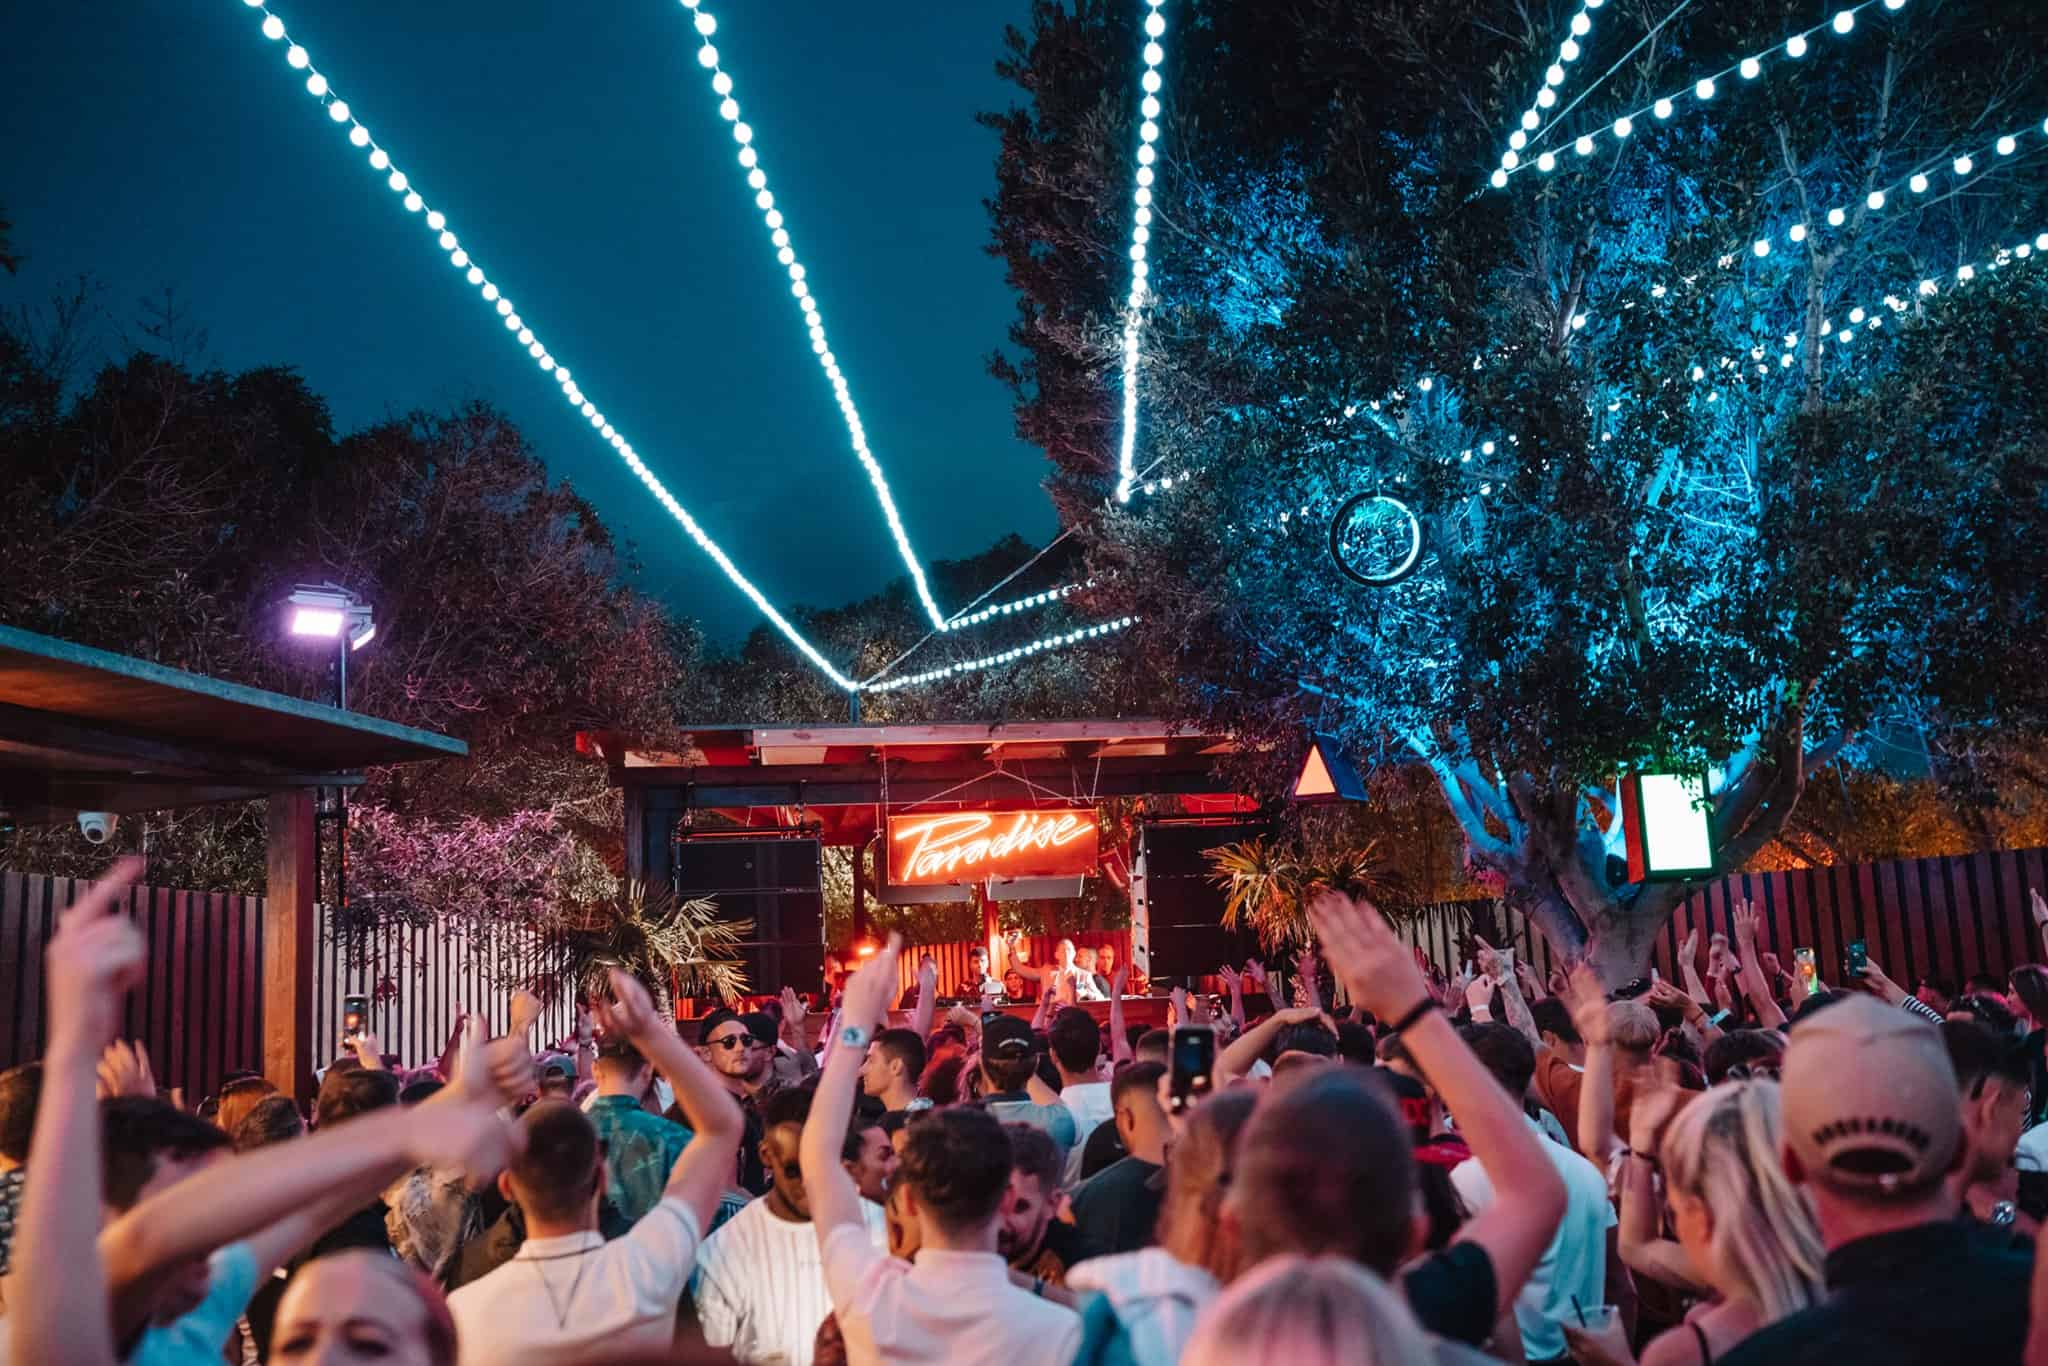 Paradise Ibiza 2021 - Tickets, Events and Lineup 2